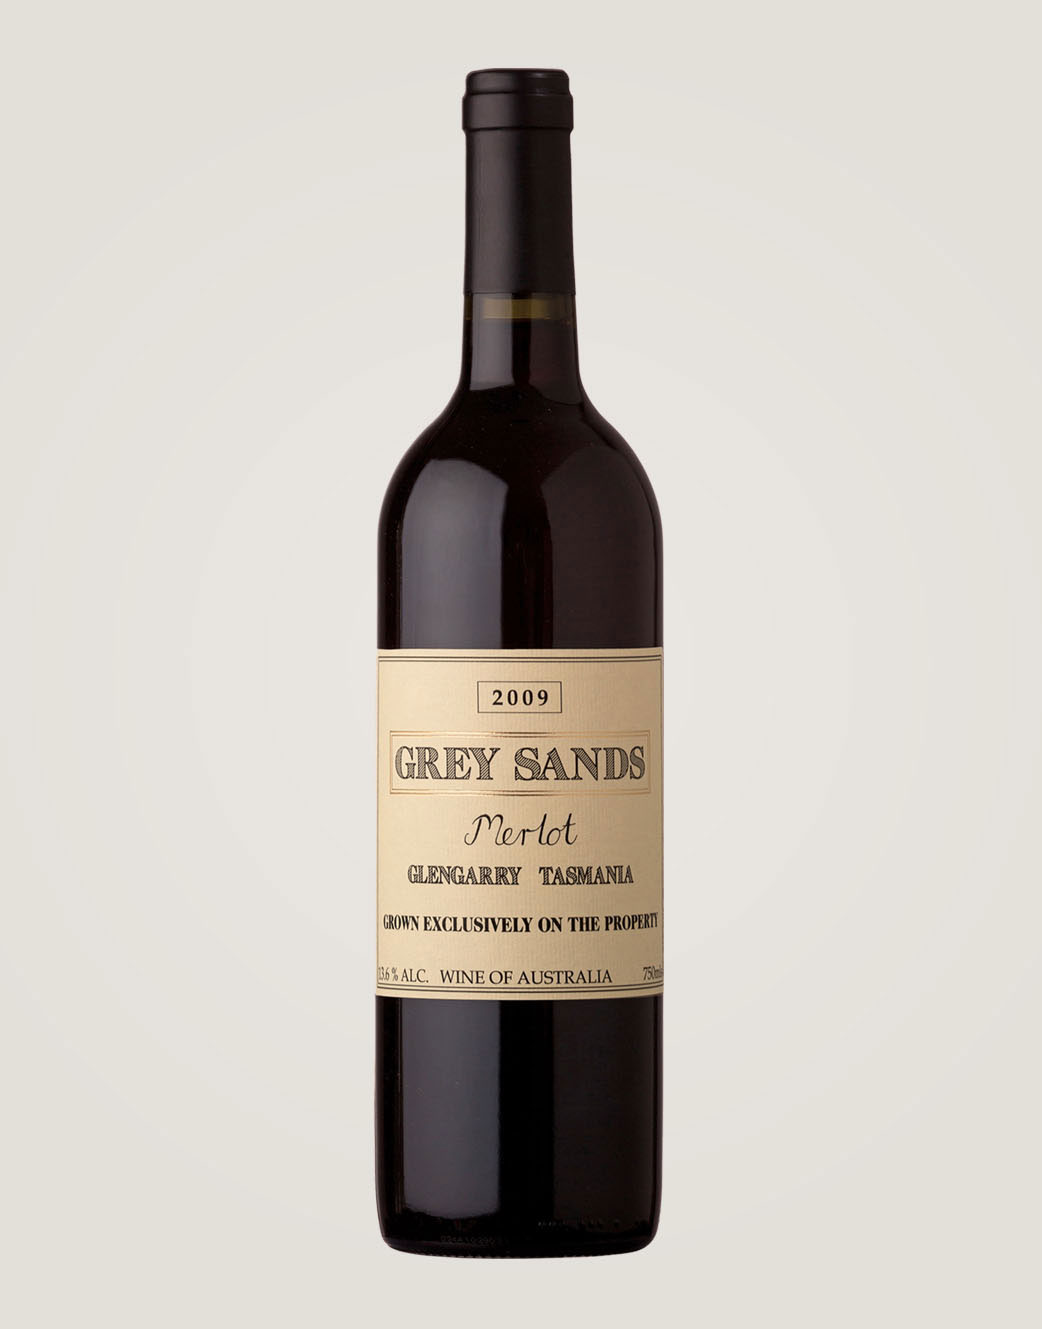 Grey Sands 2009 Merlot bottle